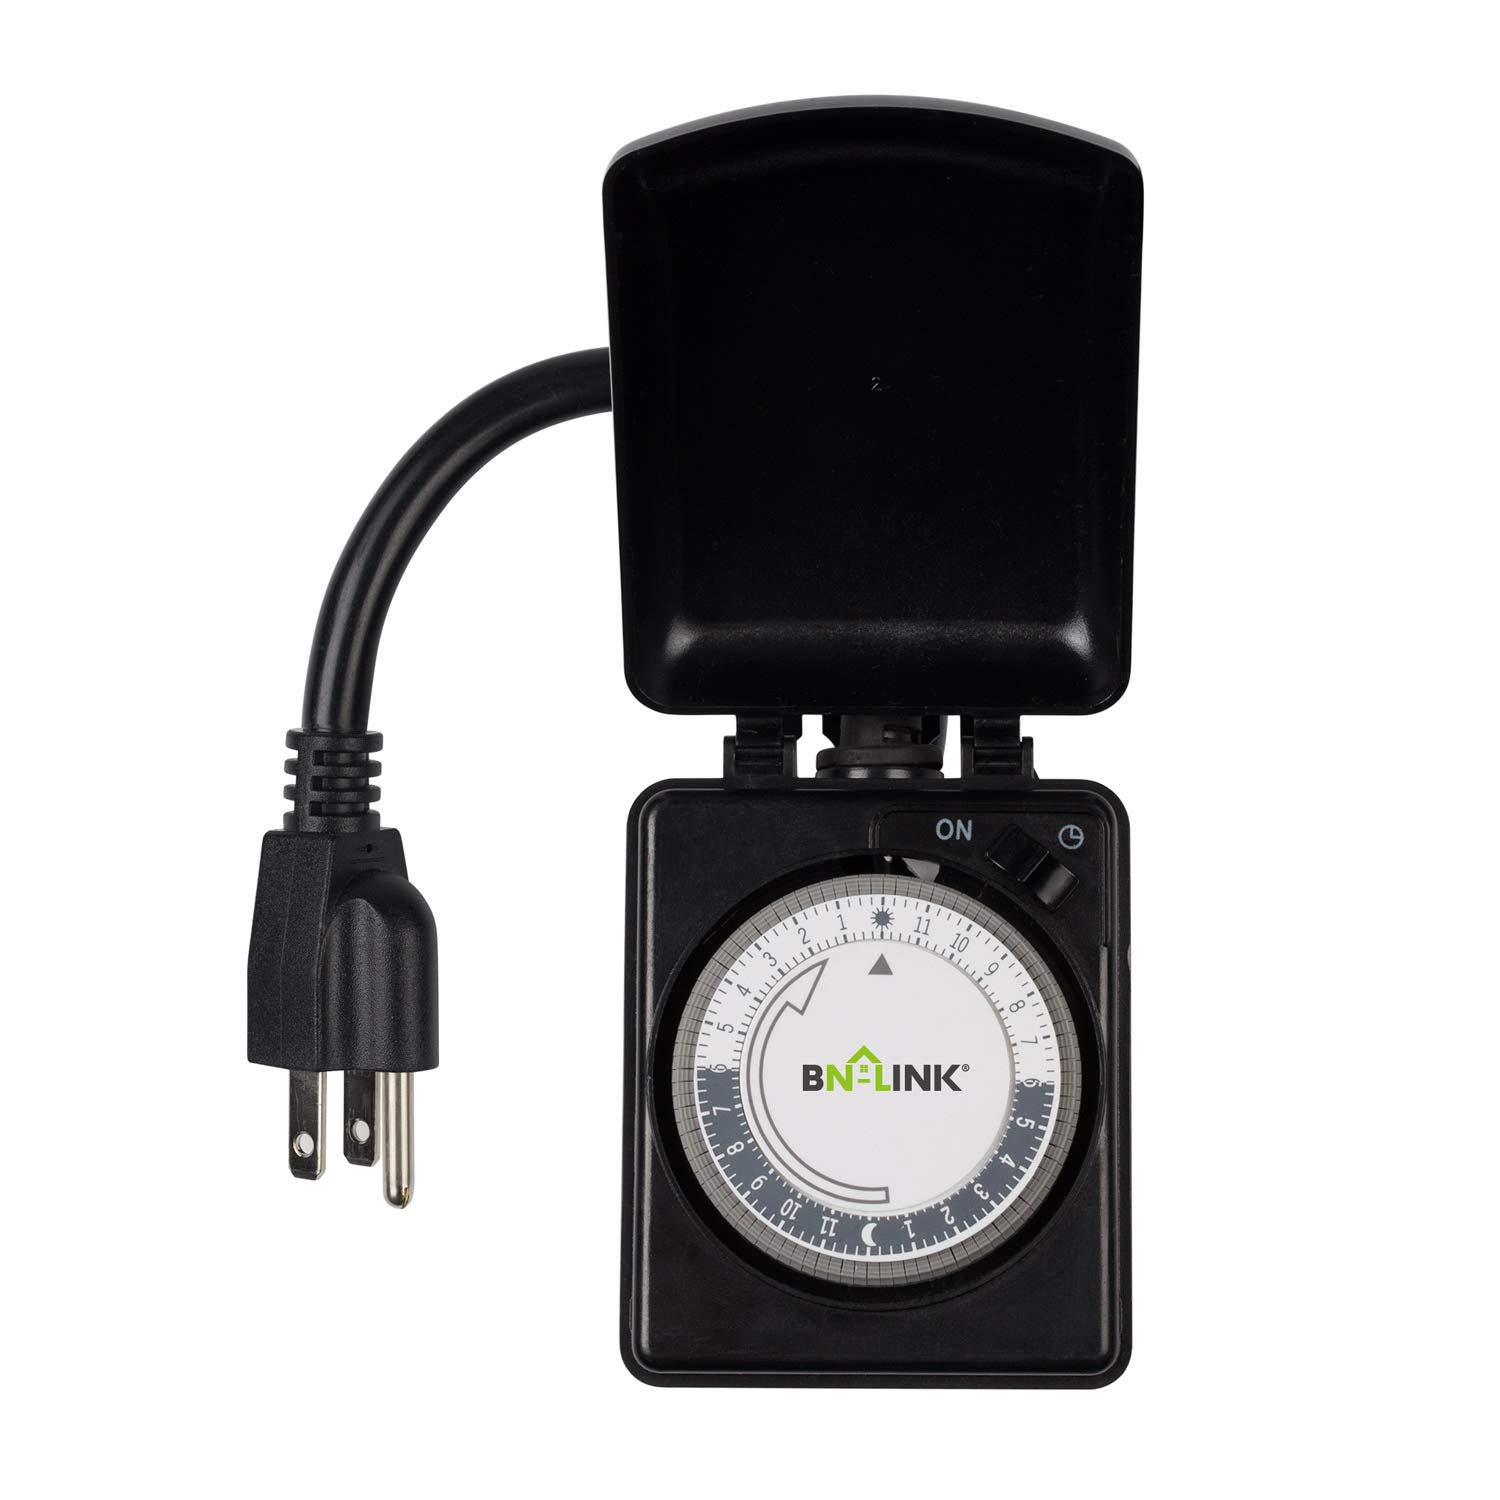 BN-LINK Compact Outdoor Mechanical Timer, 24 Hour Programmable Dual Outlet Timer - Plug in, Waterproof, Heavy Duty, Accurate For Lamps Outdoor Christmas Lights 1875W 1/2HP ETL Listed by BN-LINK